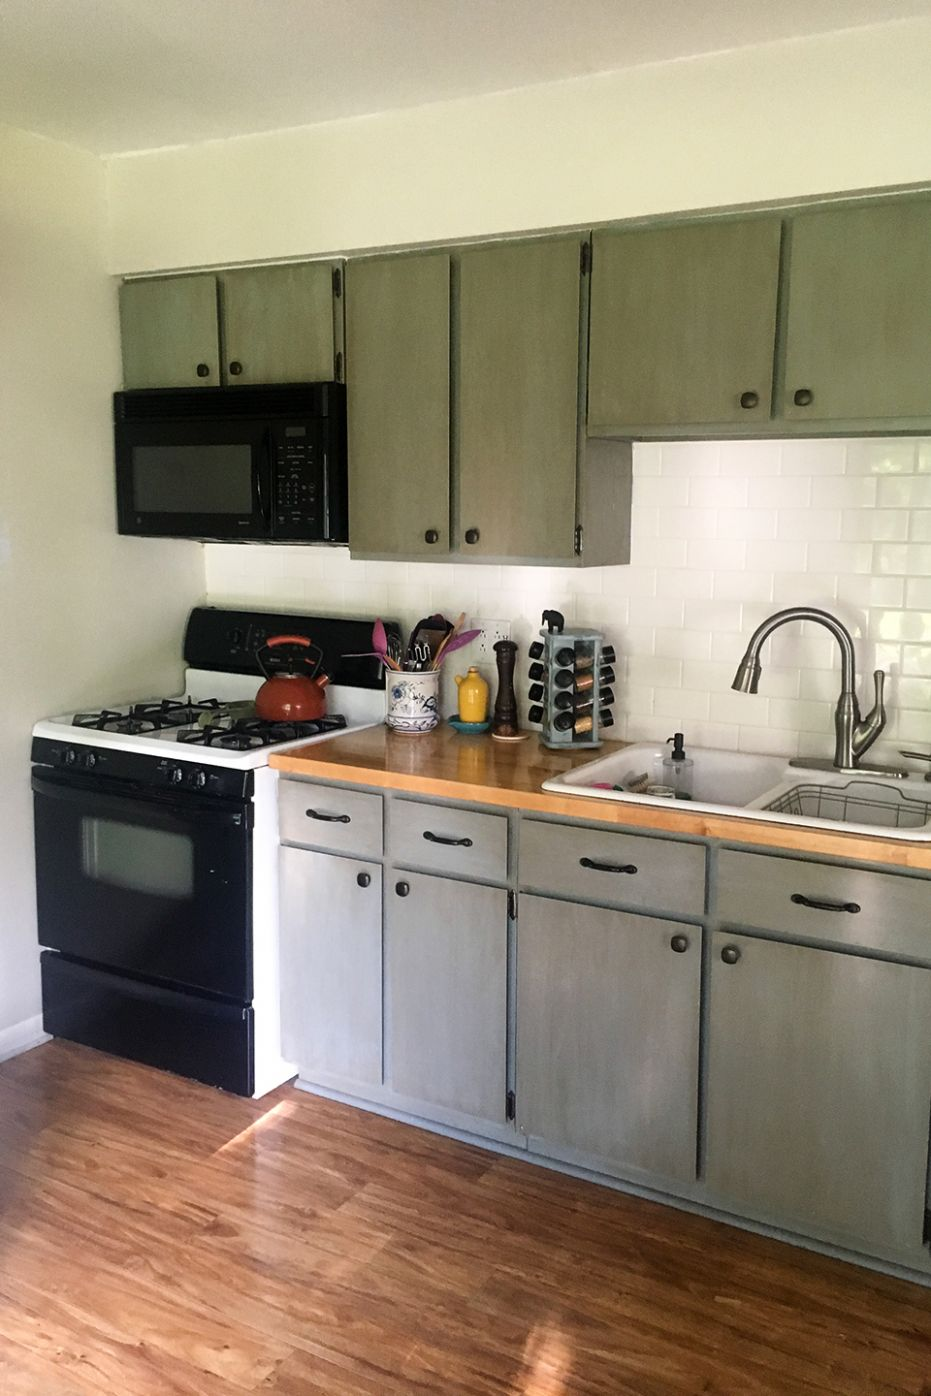 Kitchen Remodel on a Budget: 8 Low-Cost Ideas to Help You Spend Less - kitchen ideas value